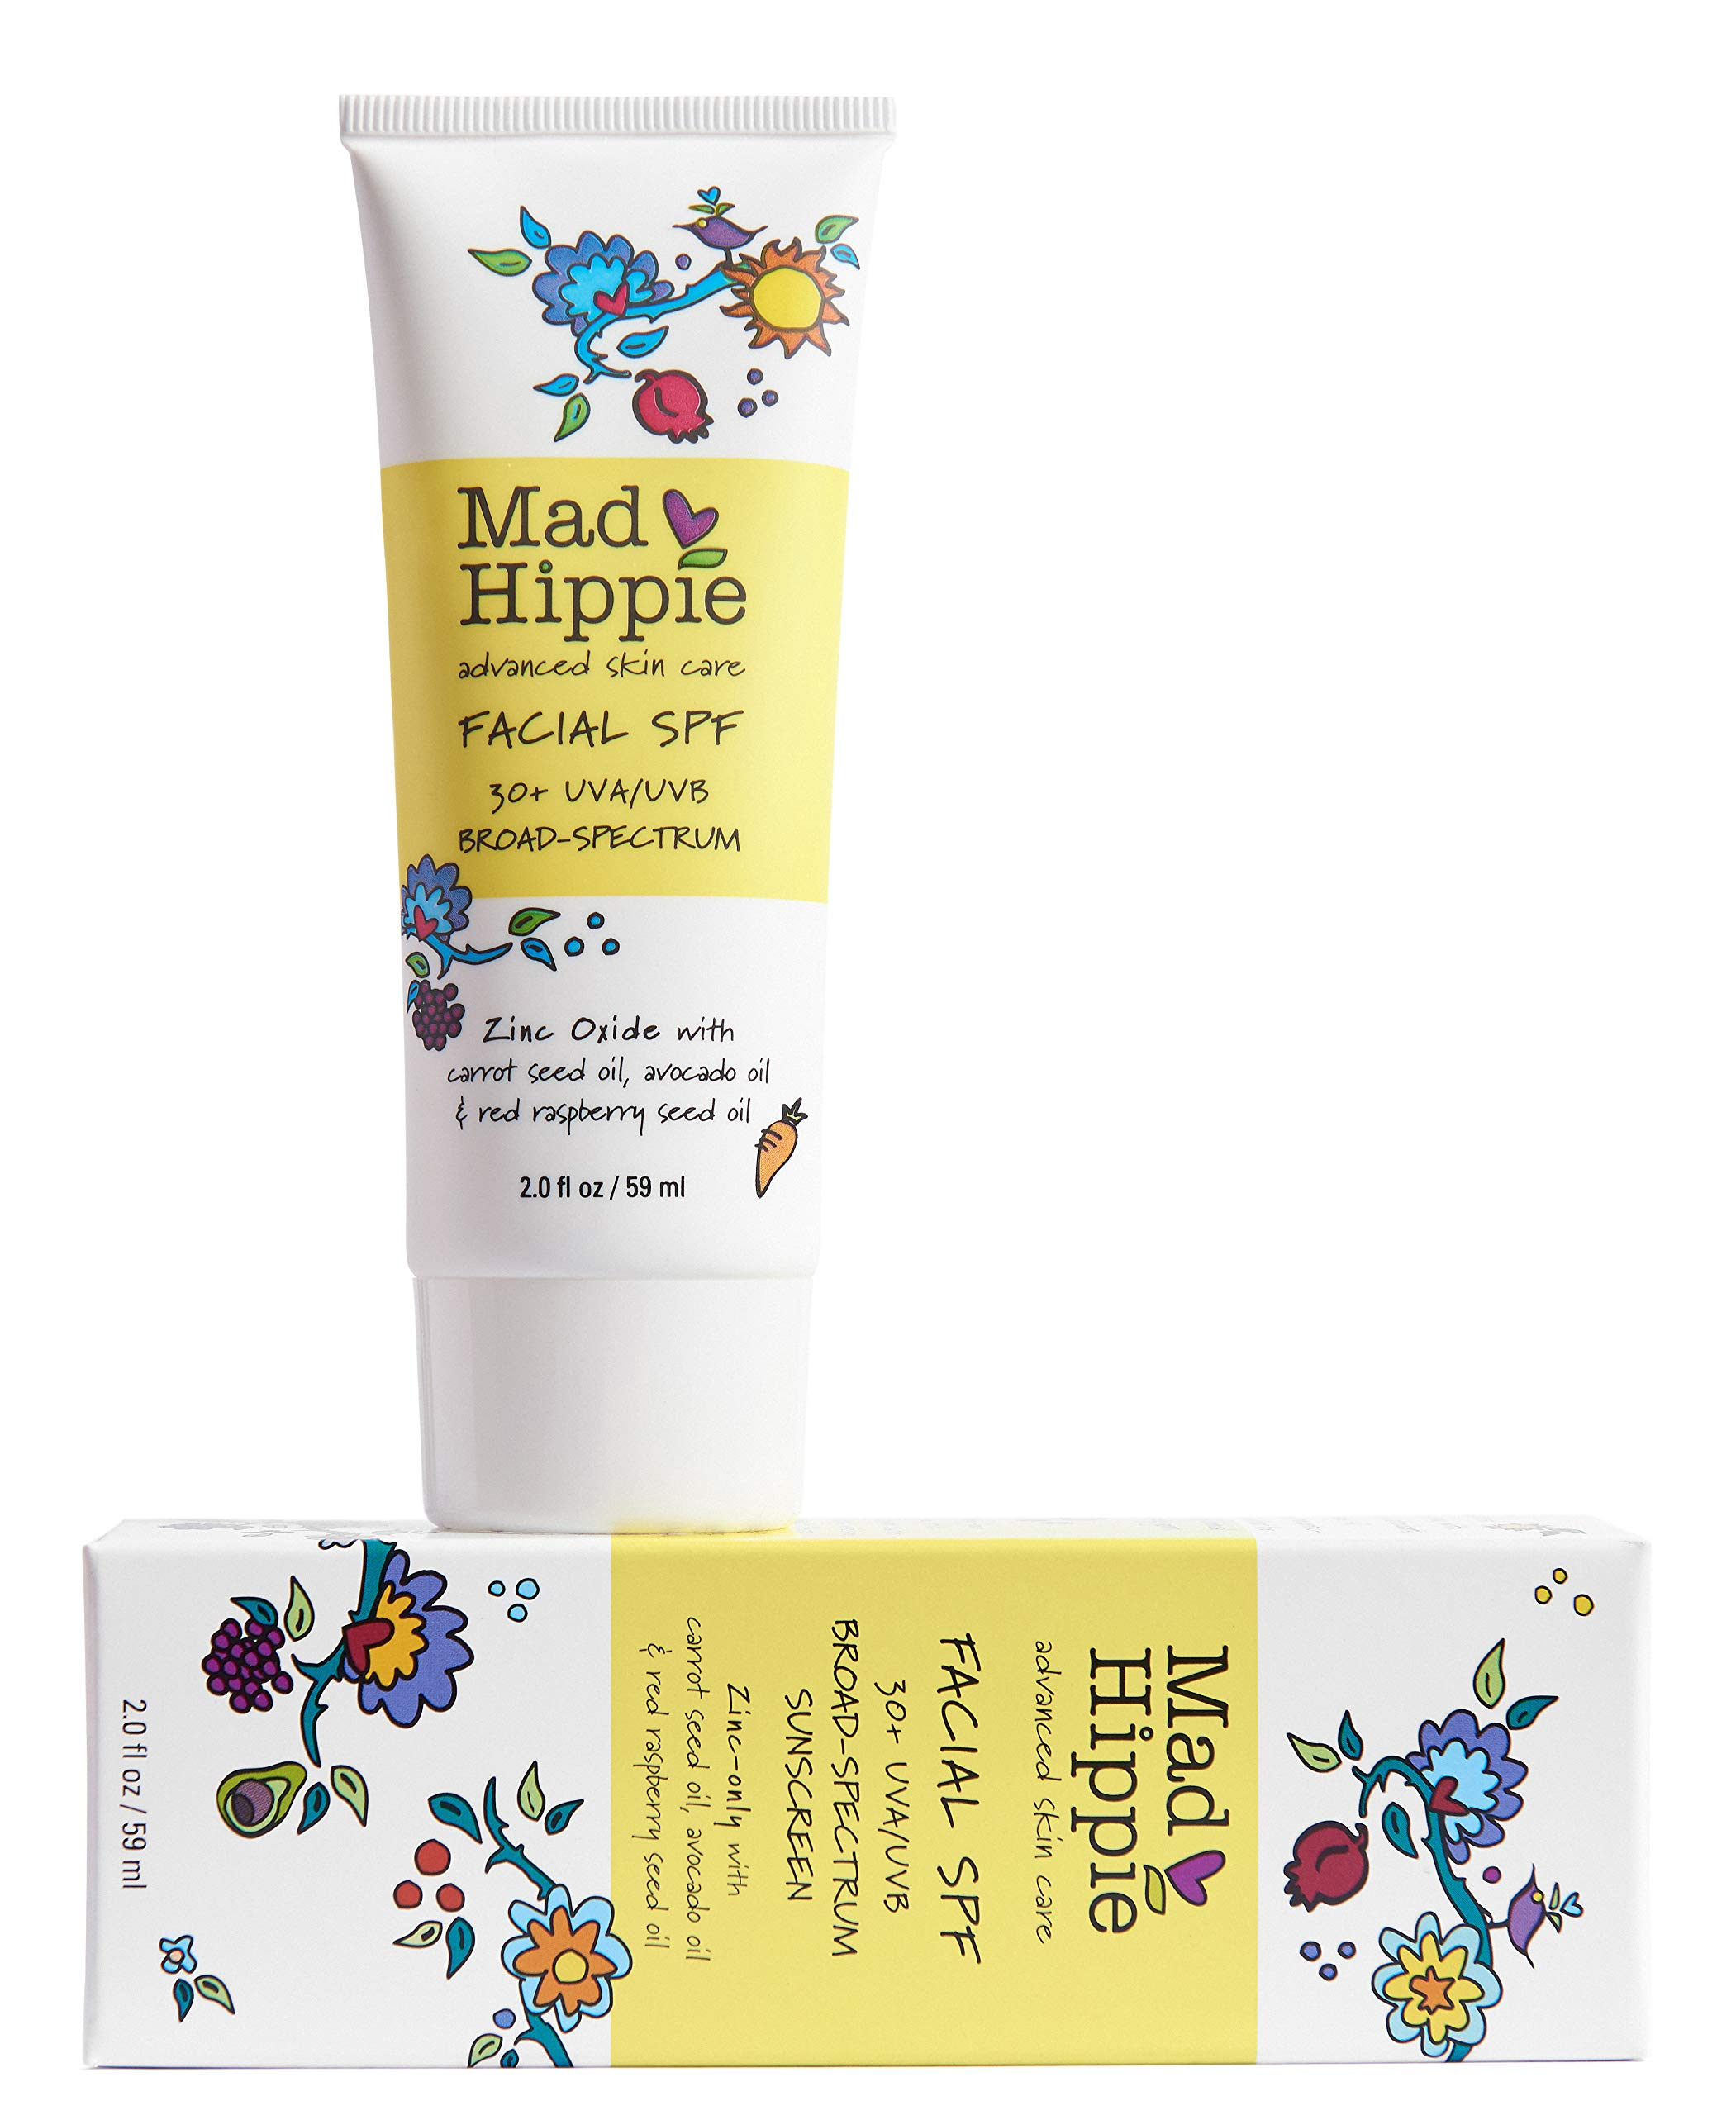 Mad Hippie Skin Care Products, Facial SPF, 30+ UVA/UVB Broad-Spectrum, 1.94 oz (55 g)